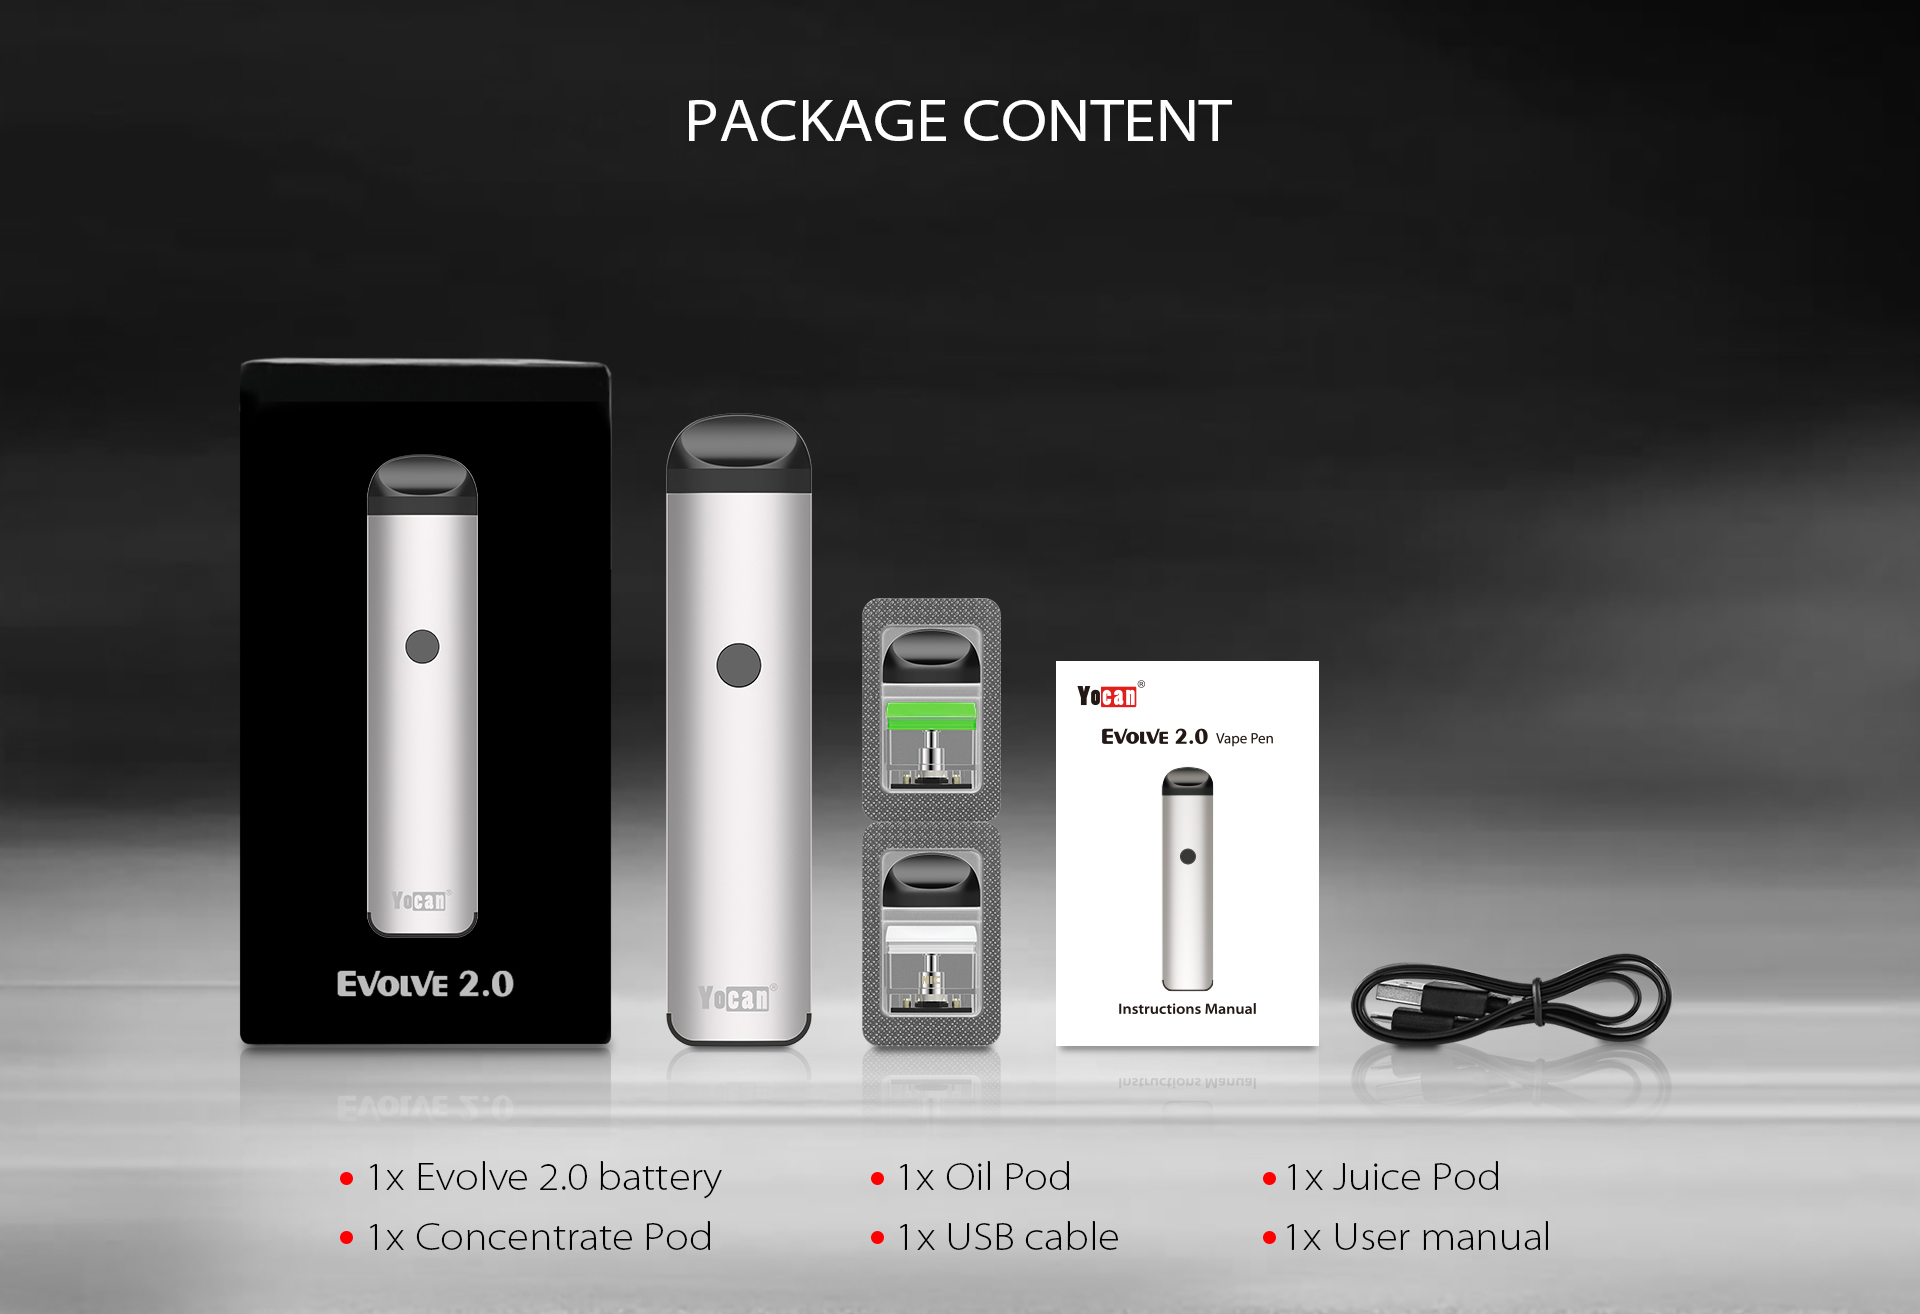 The Package Content of Yocan Evolve 2.0